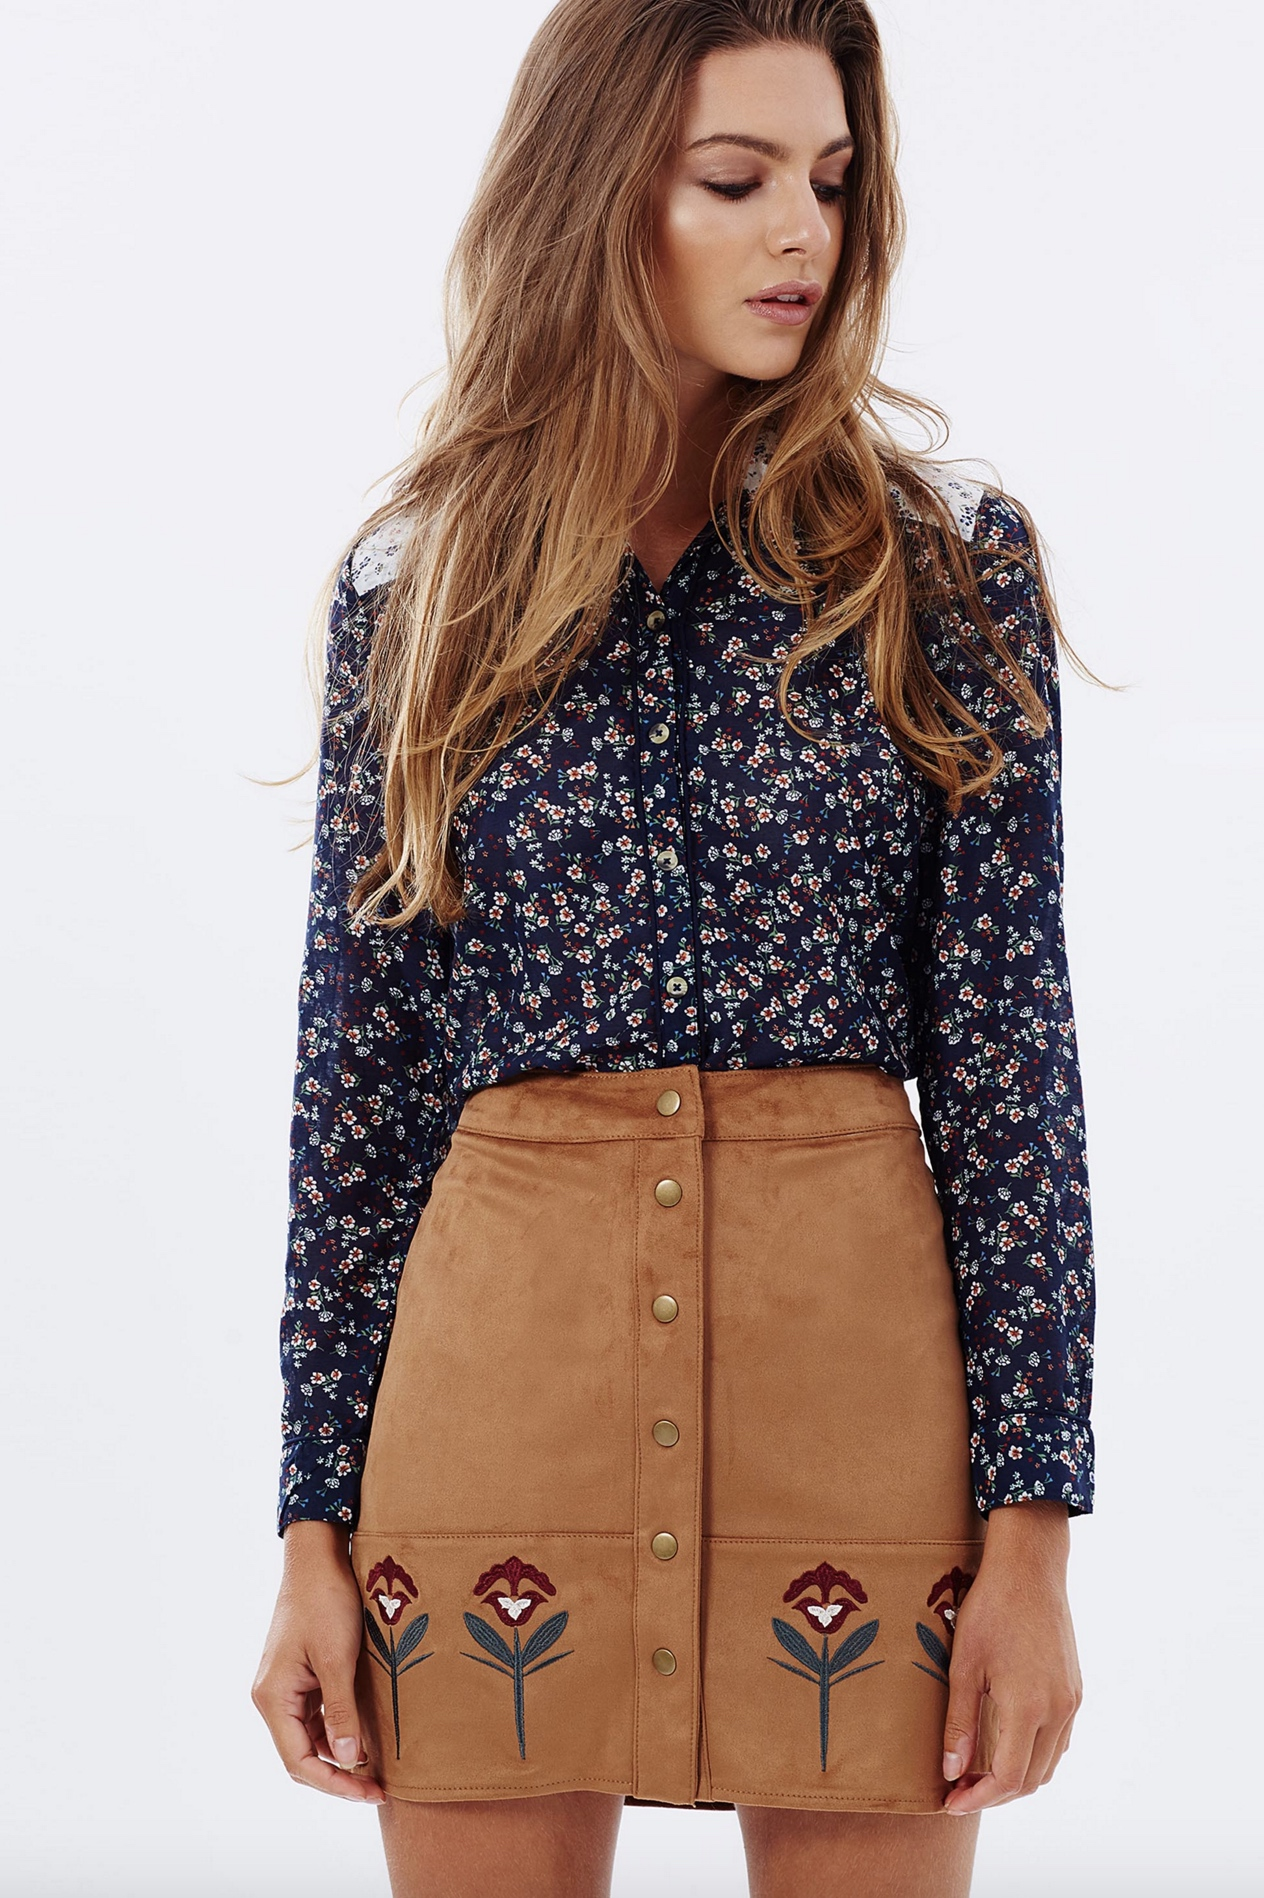 Dorothy Perkins embroidered suede skirt $69.95